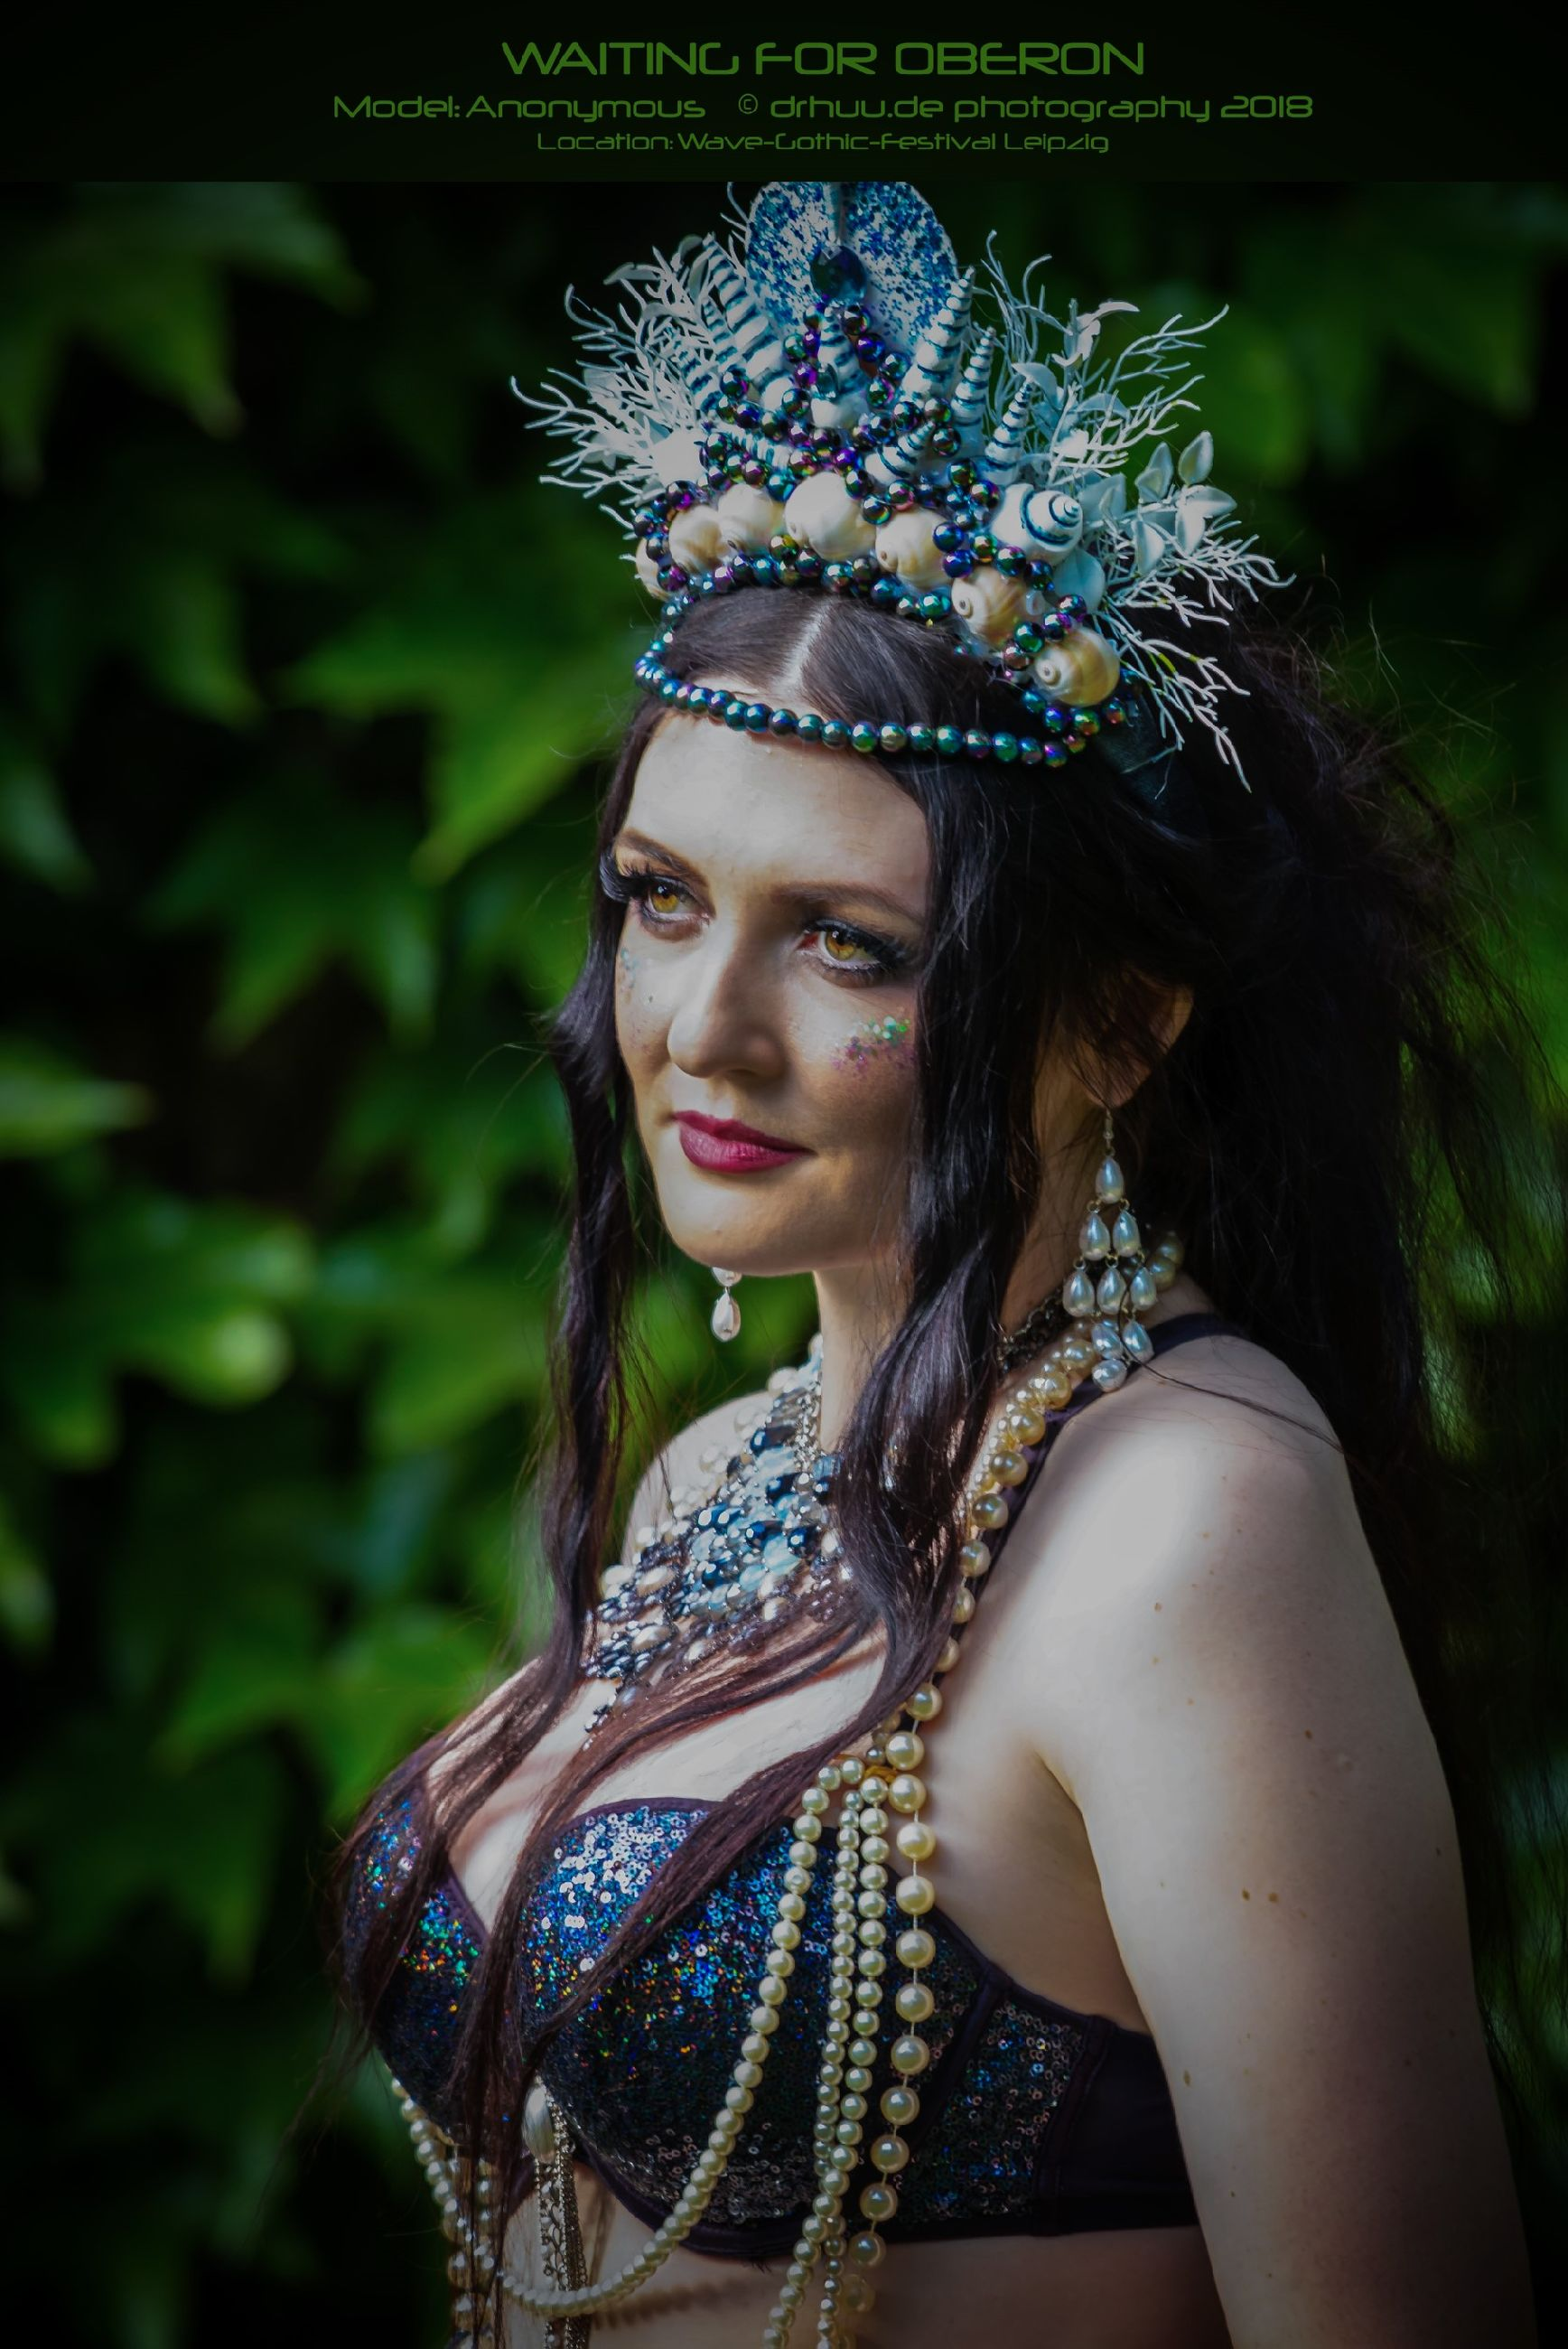 young adult, portrait, one person, women, headwear, beautiful woman, young women, beauty, traditional clothing, clothing, lifestyles, real people, focus on foreground, adult, front view, make-up, leisure activity, headshot, looking away, hair, headdress, hairstyle, outdoors